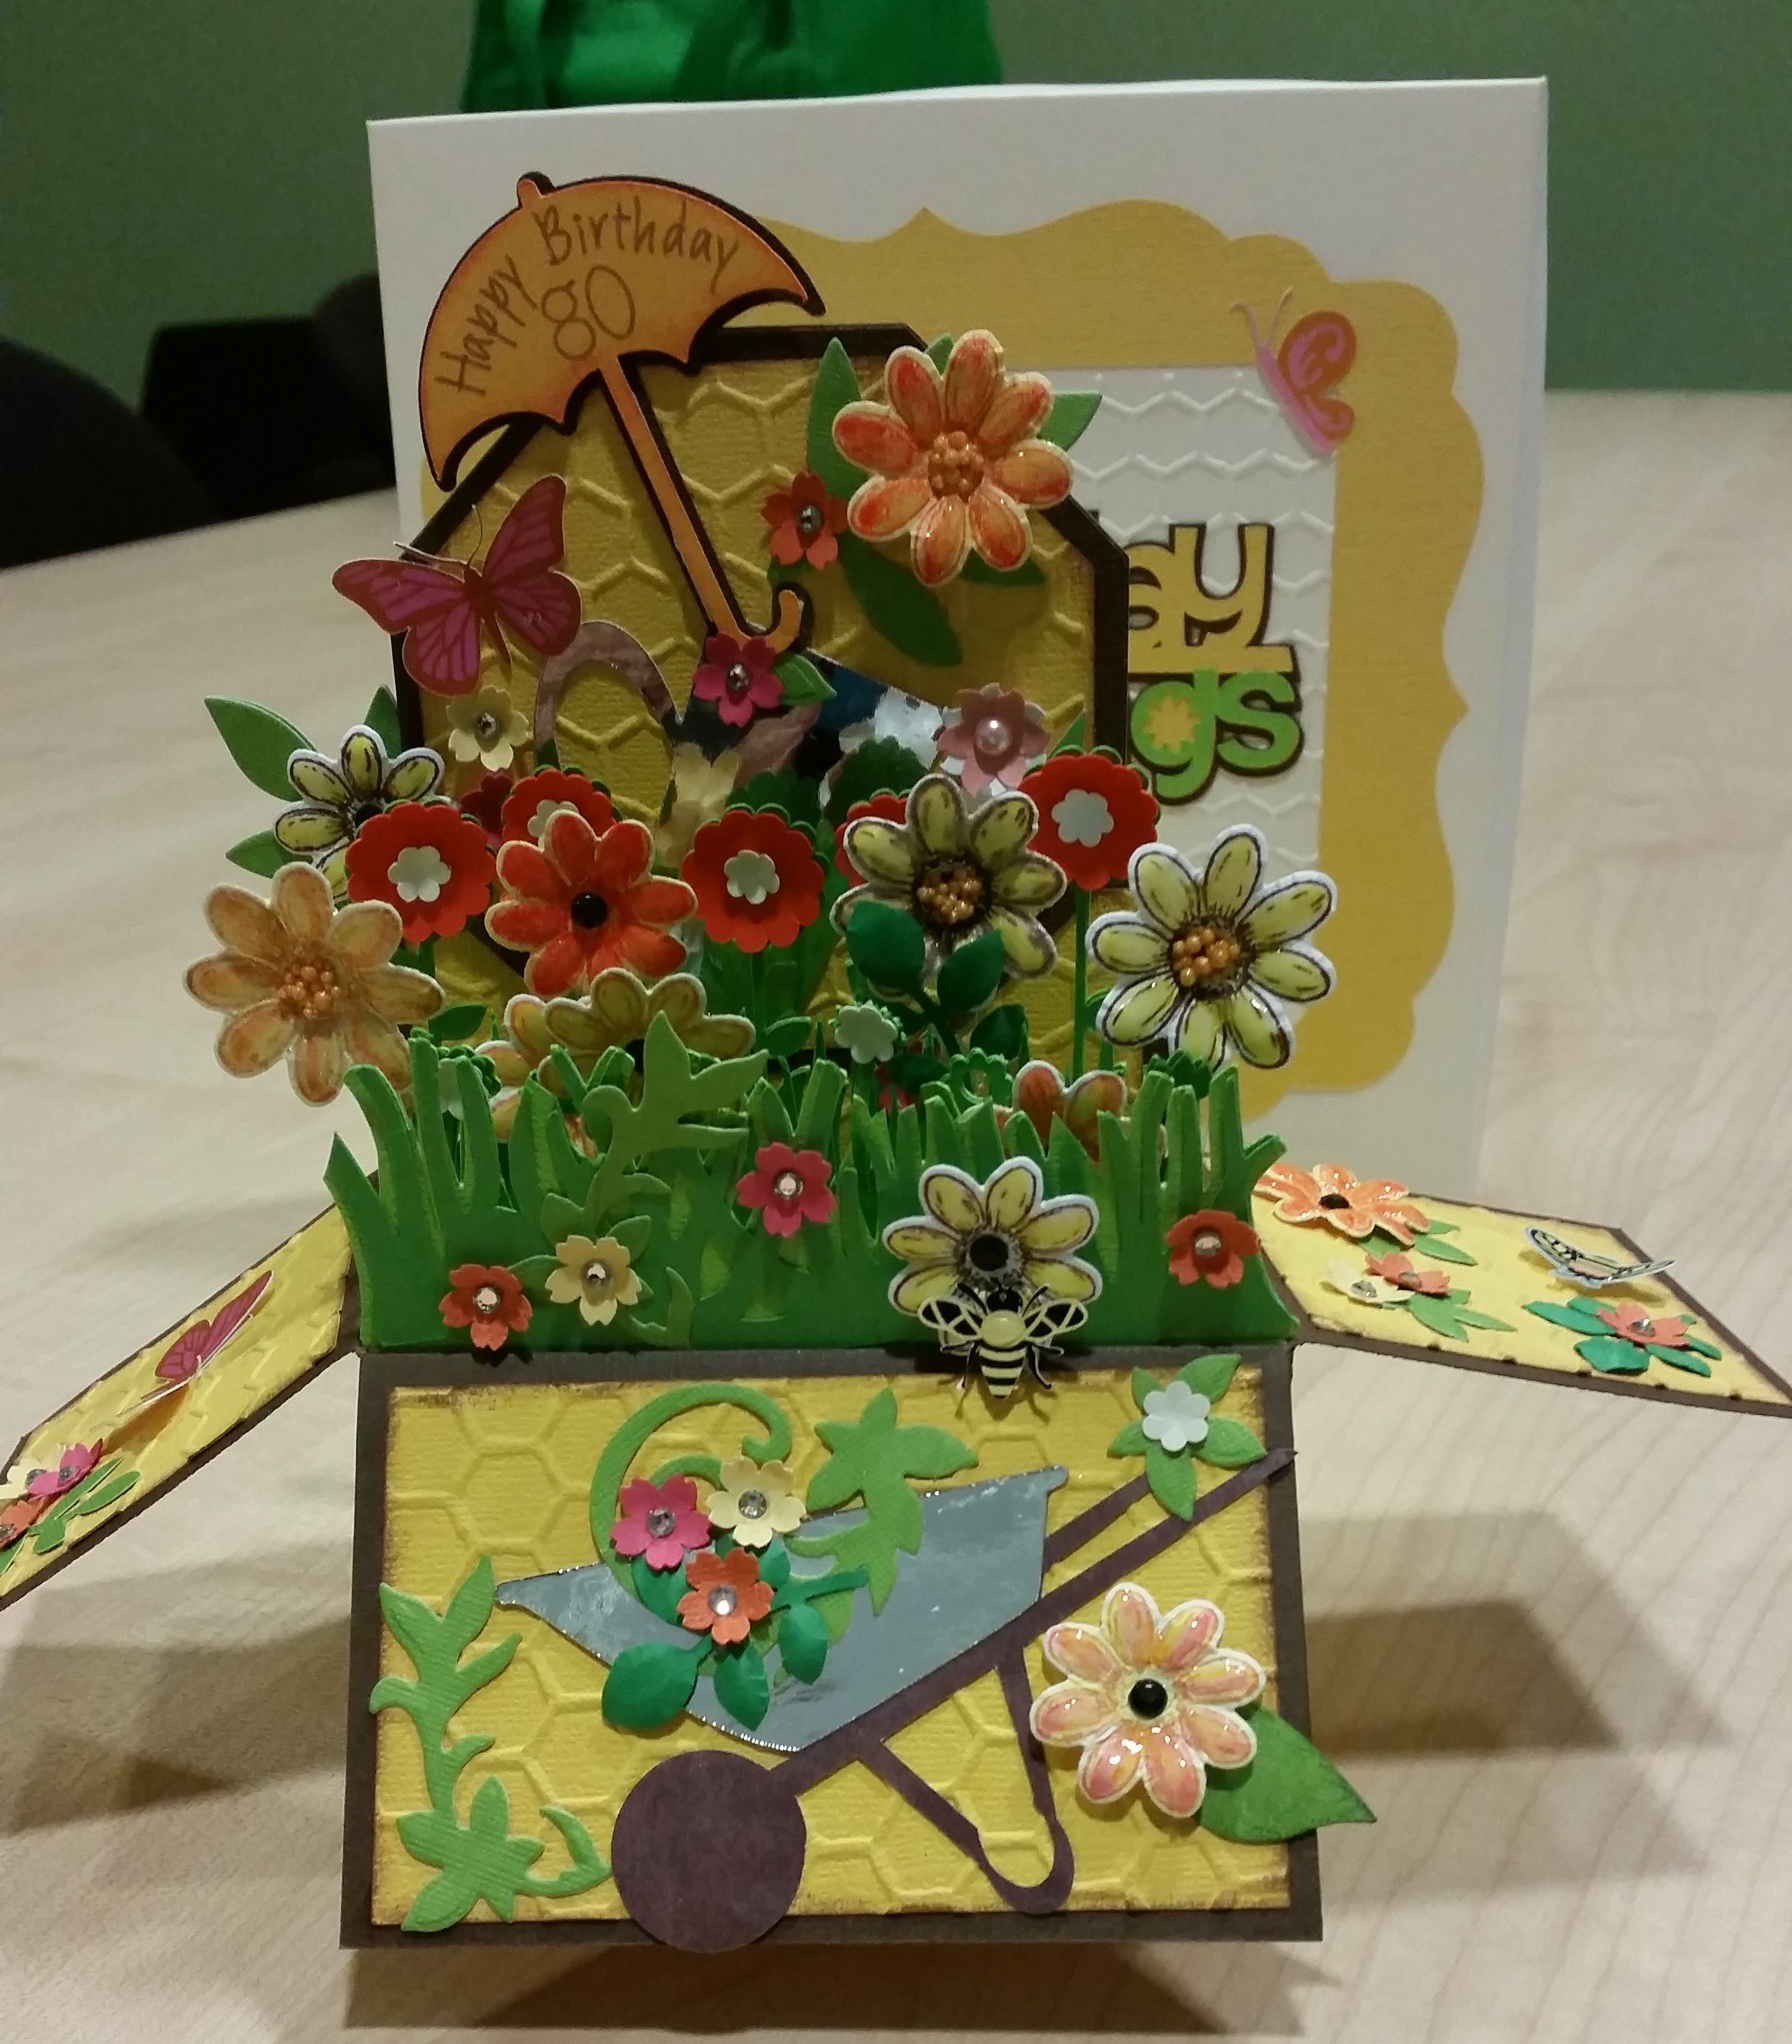 80th birthday box card made using cricut images and